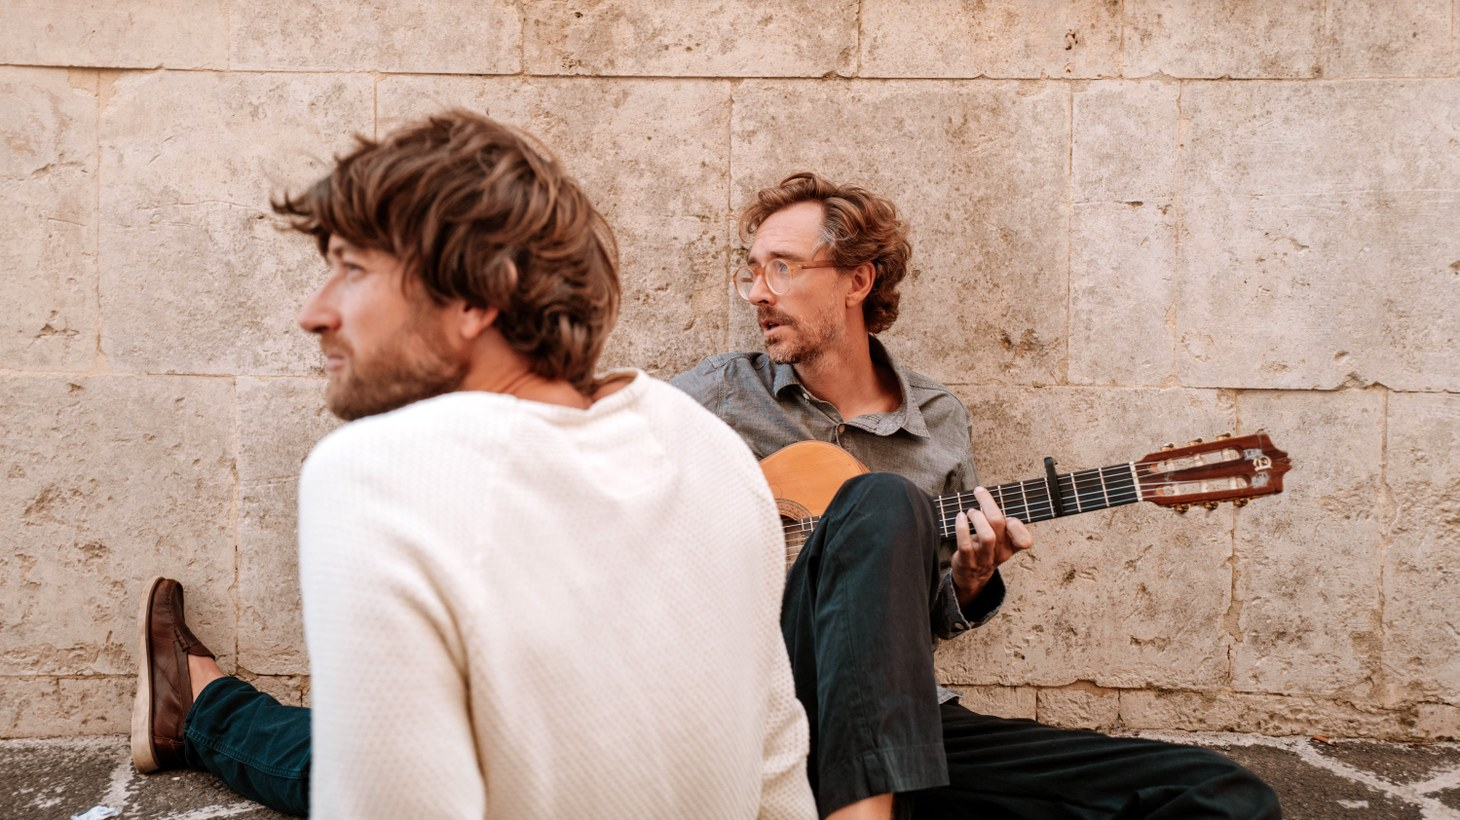 Subtle and evocative, Norway's Kings of Convenience return to share their first new studio album in 12 years as they continue to create lilting melodies and a mellifluous sound only two old harmonious friends can make.